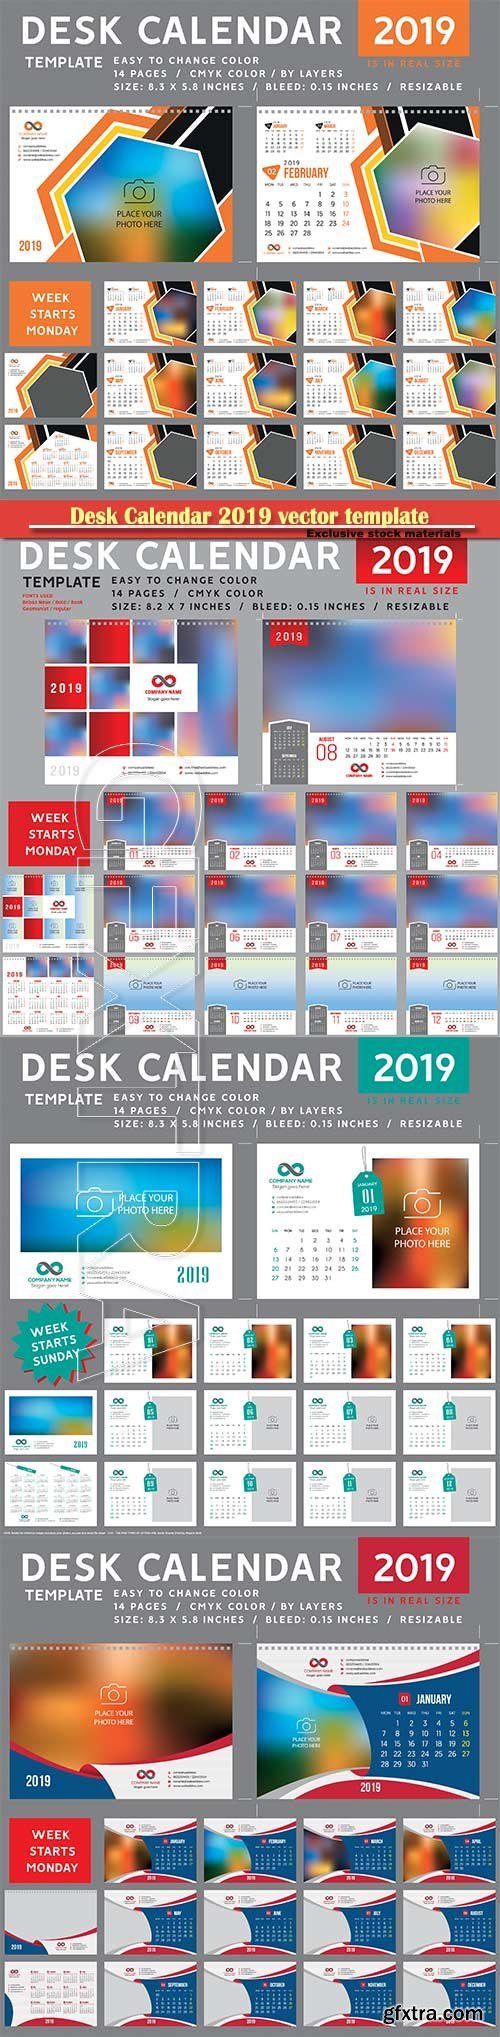 Desk Calendar 2019 vector template, 12 months included # 5